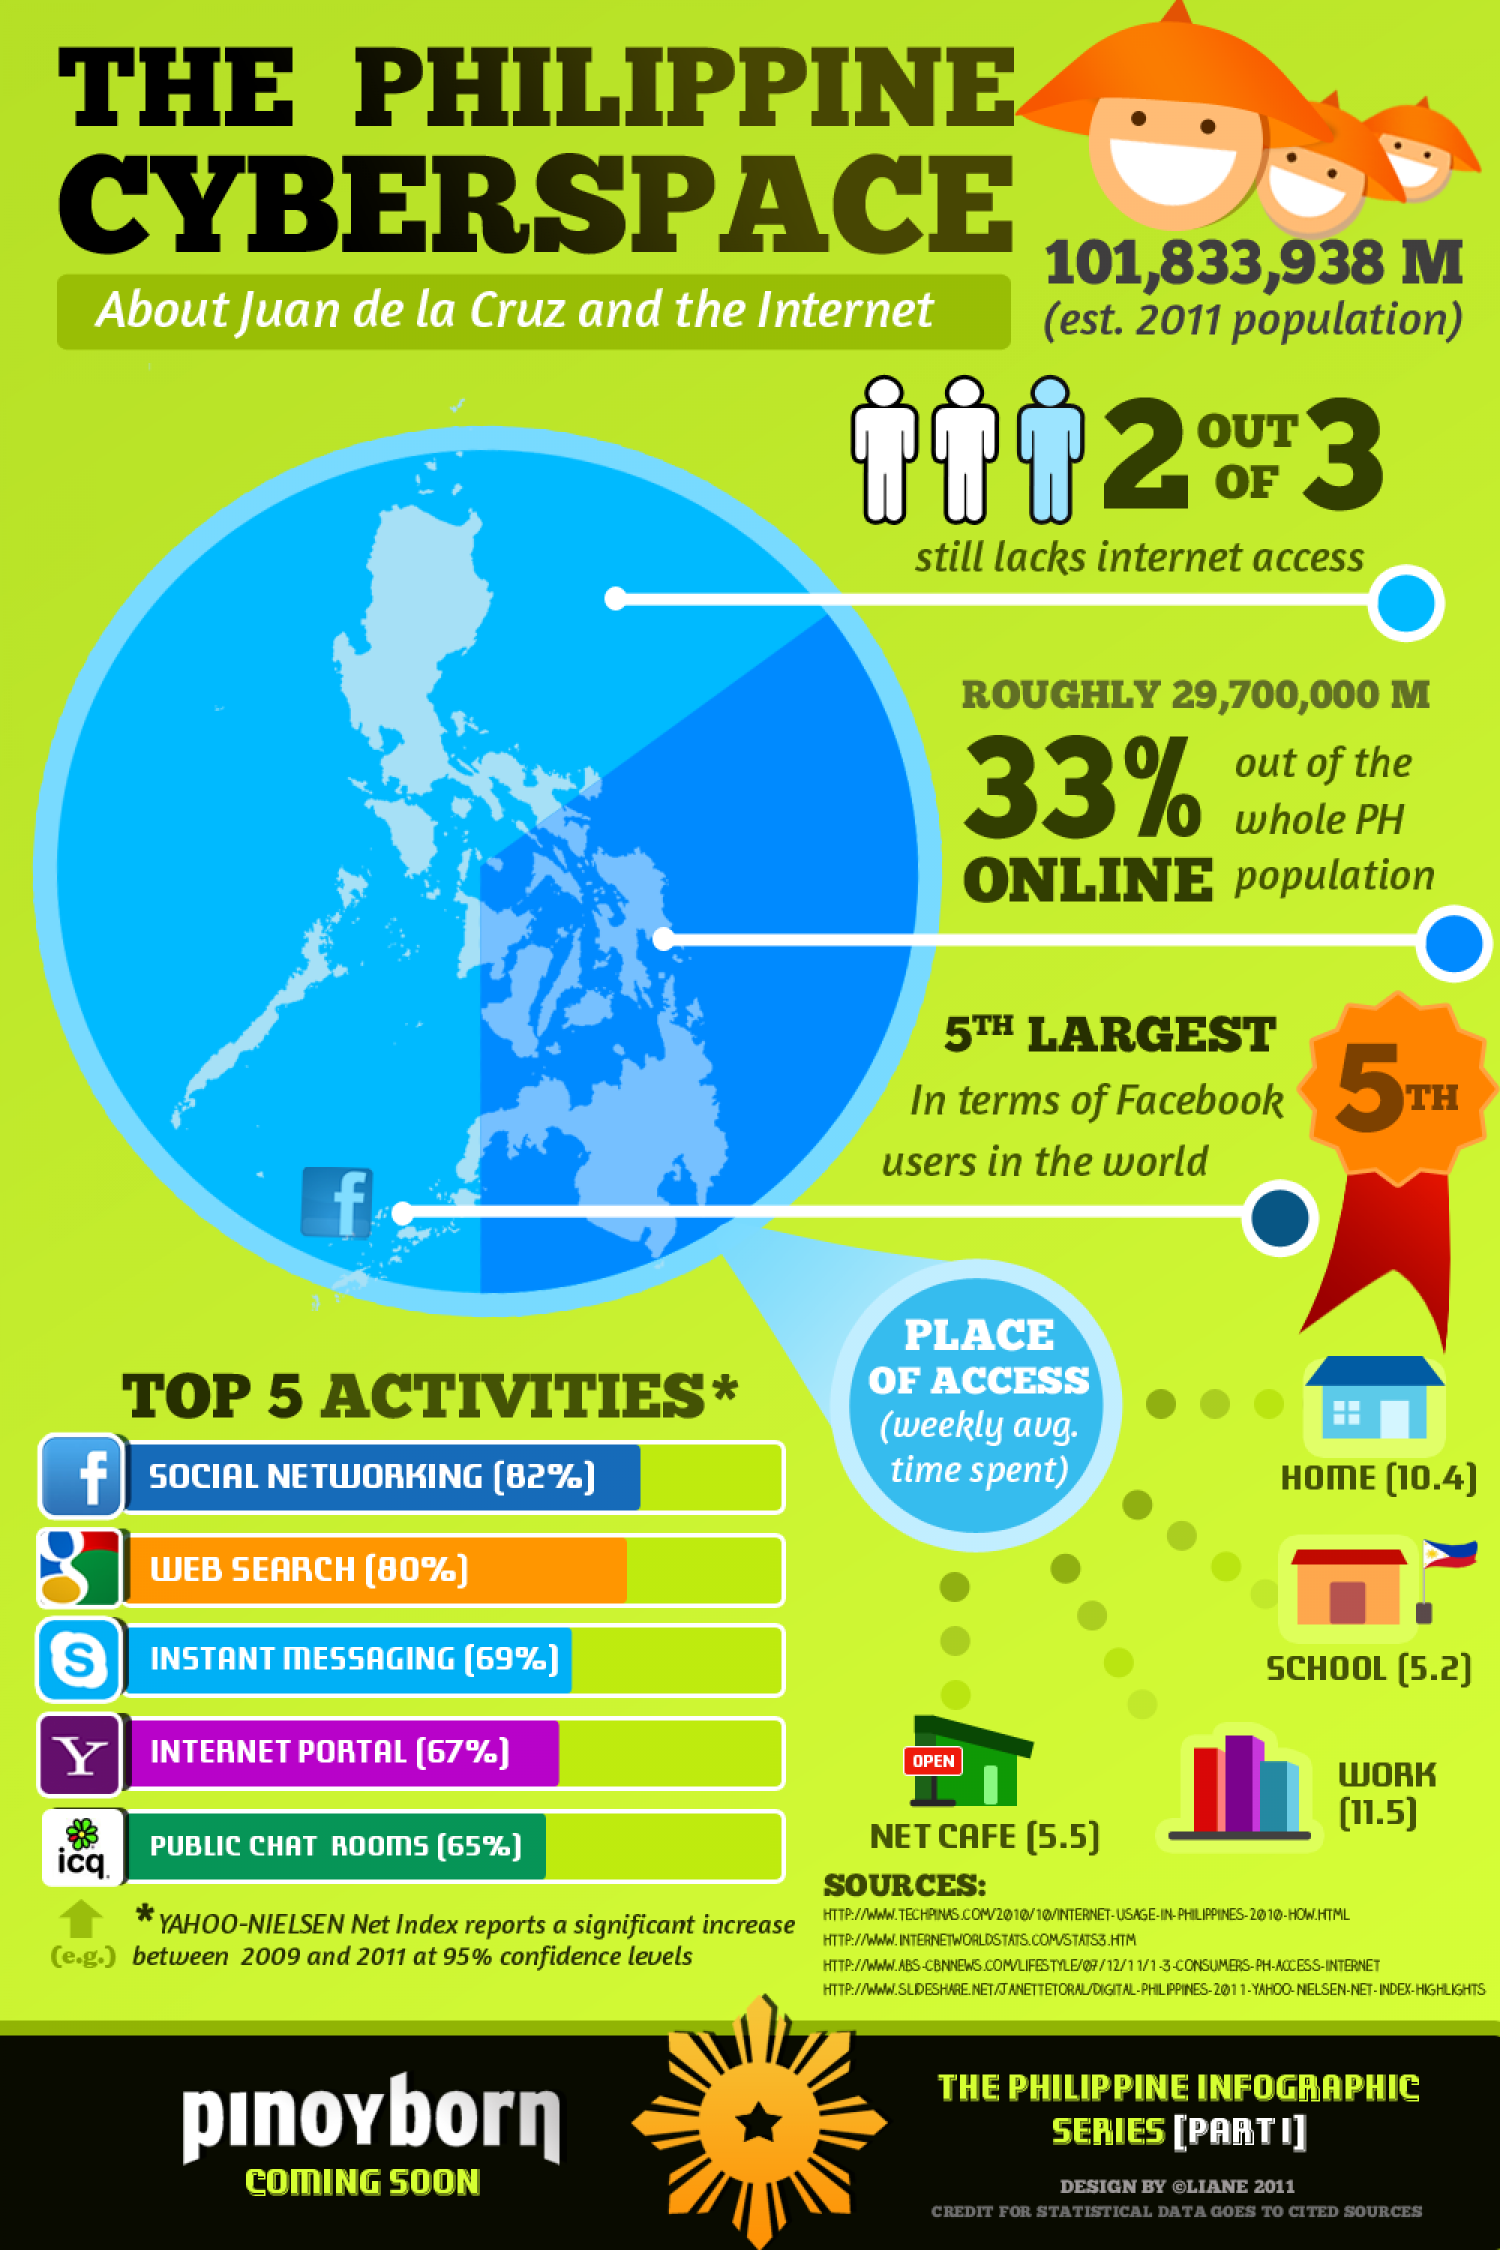 The Philippine Cyberspace Infographic